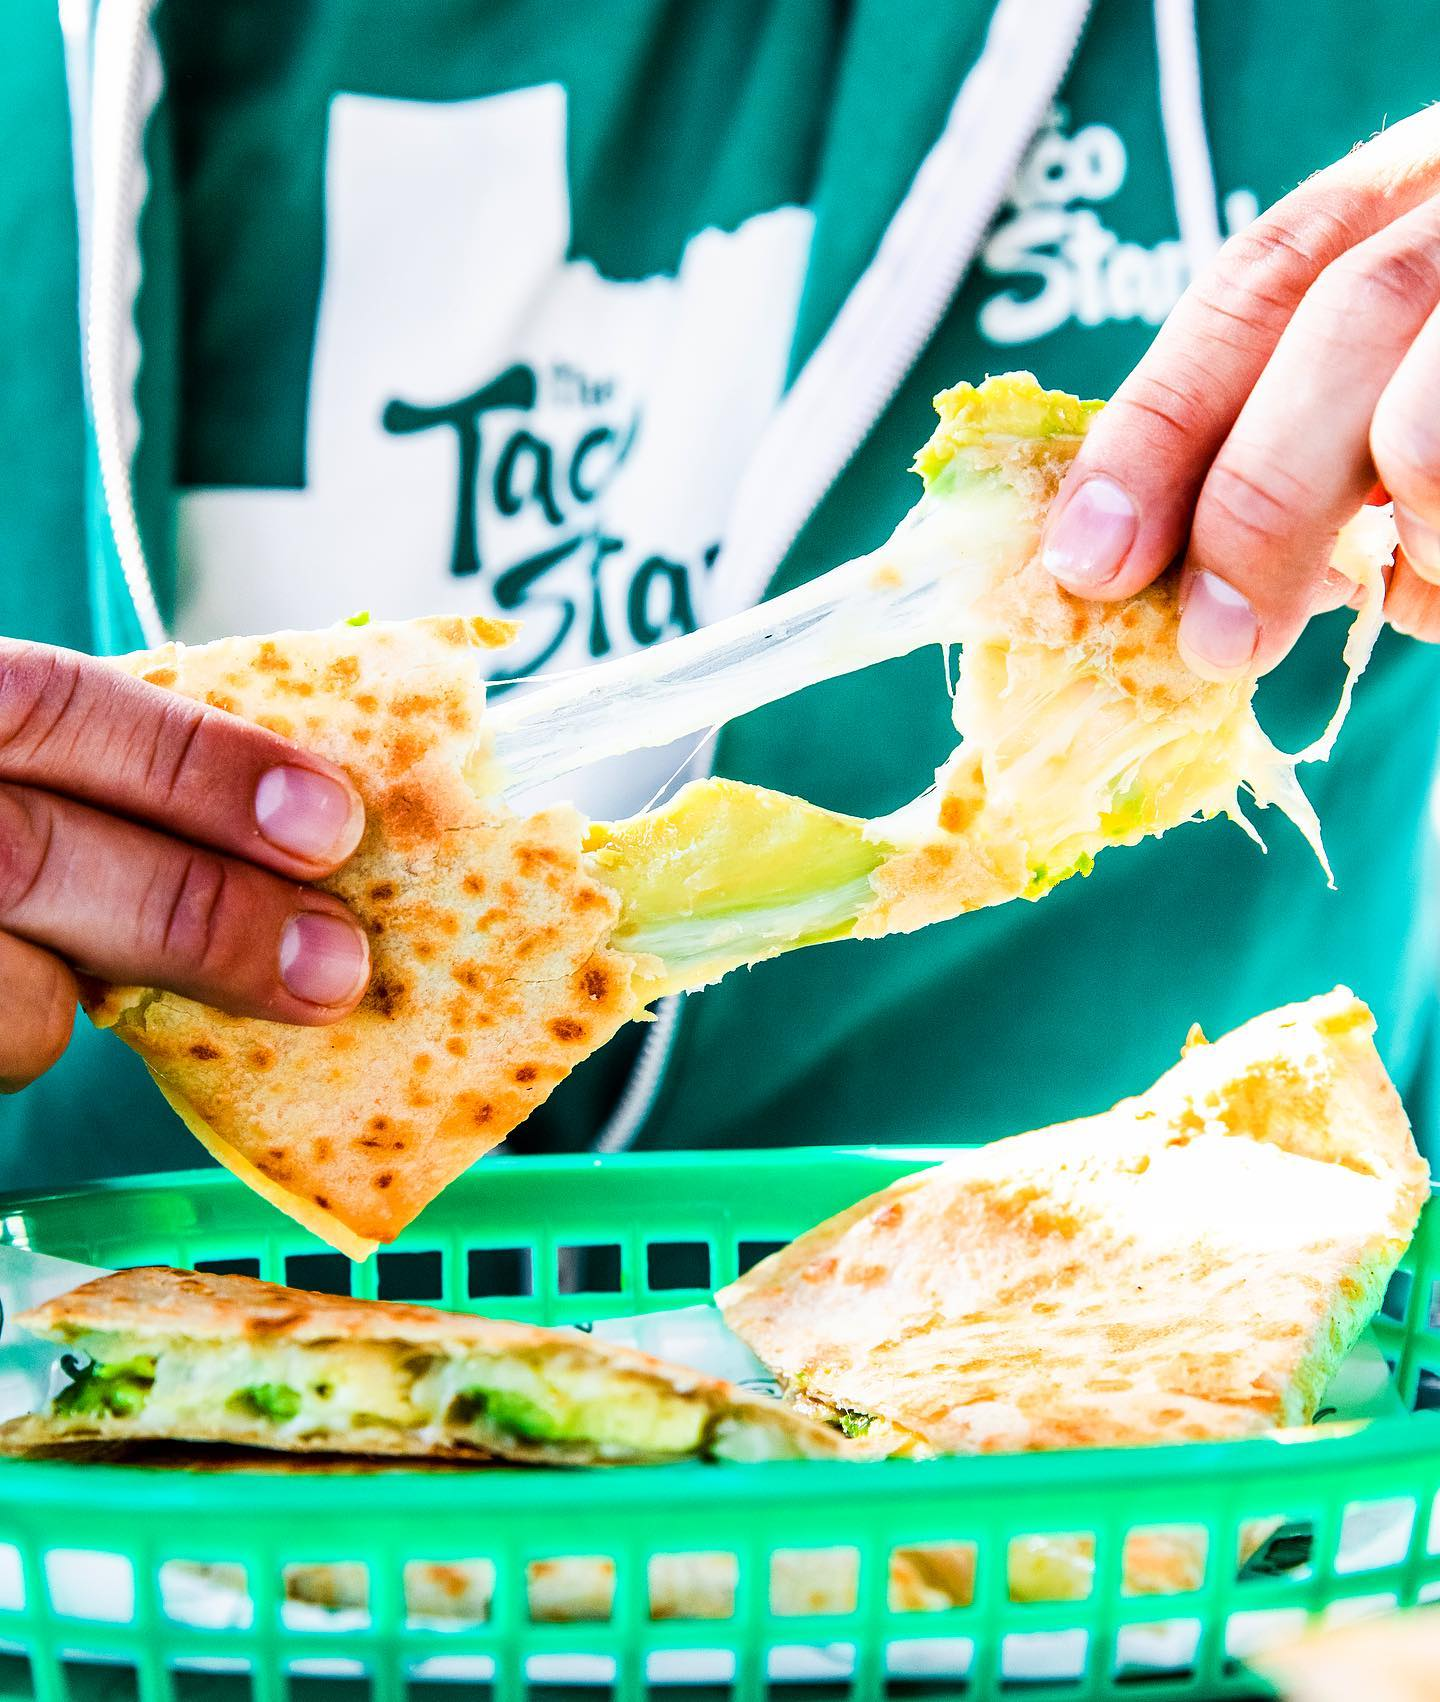 two hands pulling apart a cheesy quesadilla